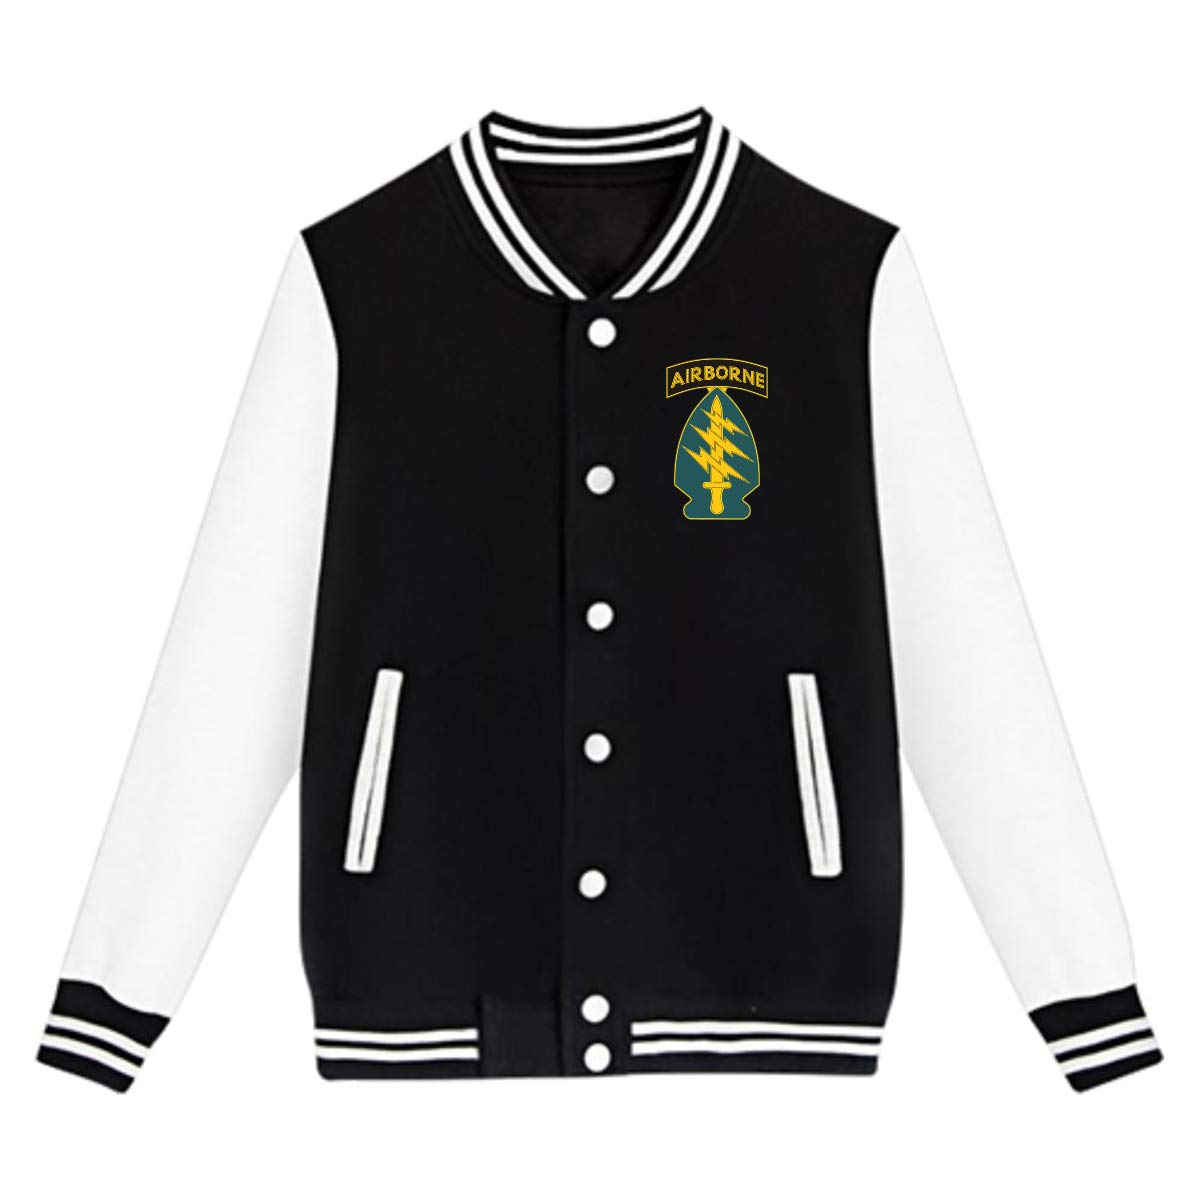 Army Special Forces Unit Youth Baseball Jackets Uniform Varsity Jackets Unisex